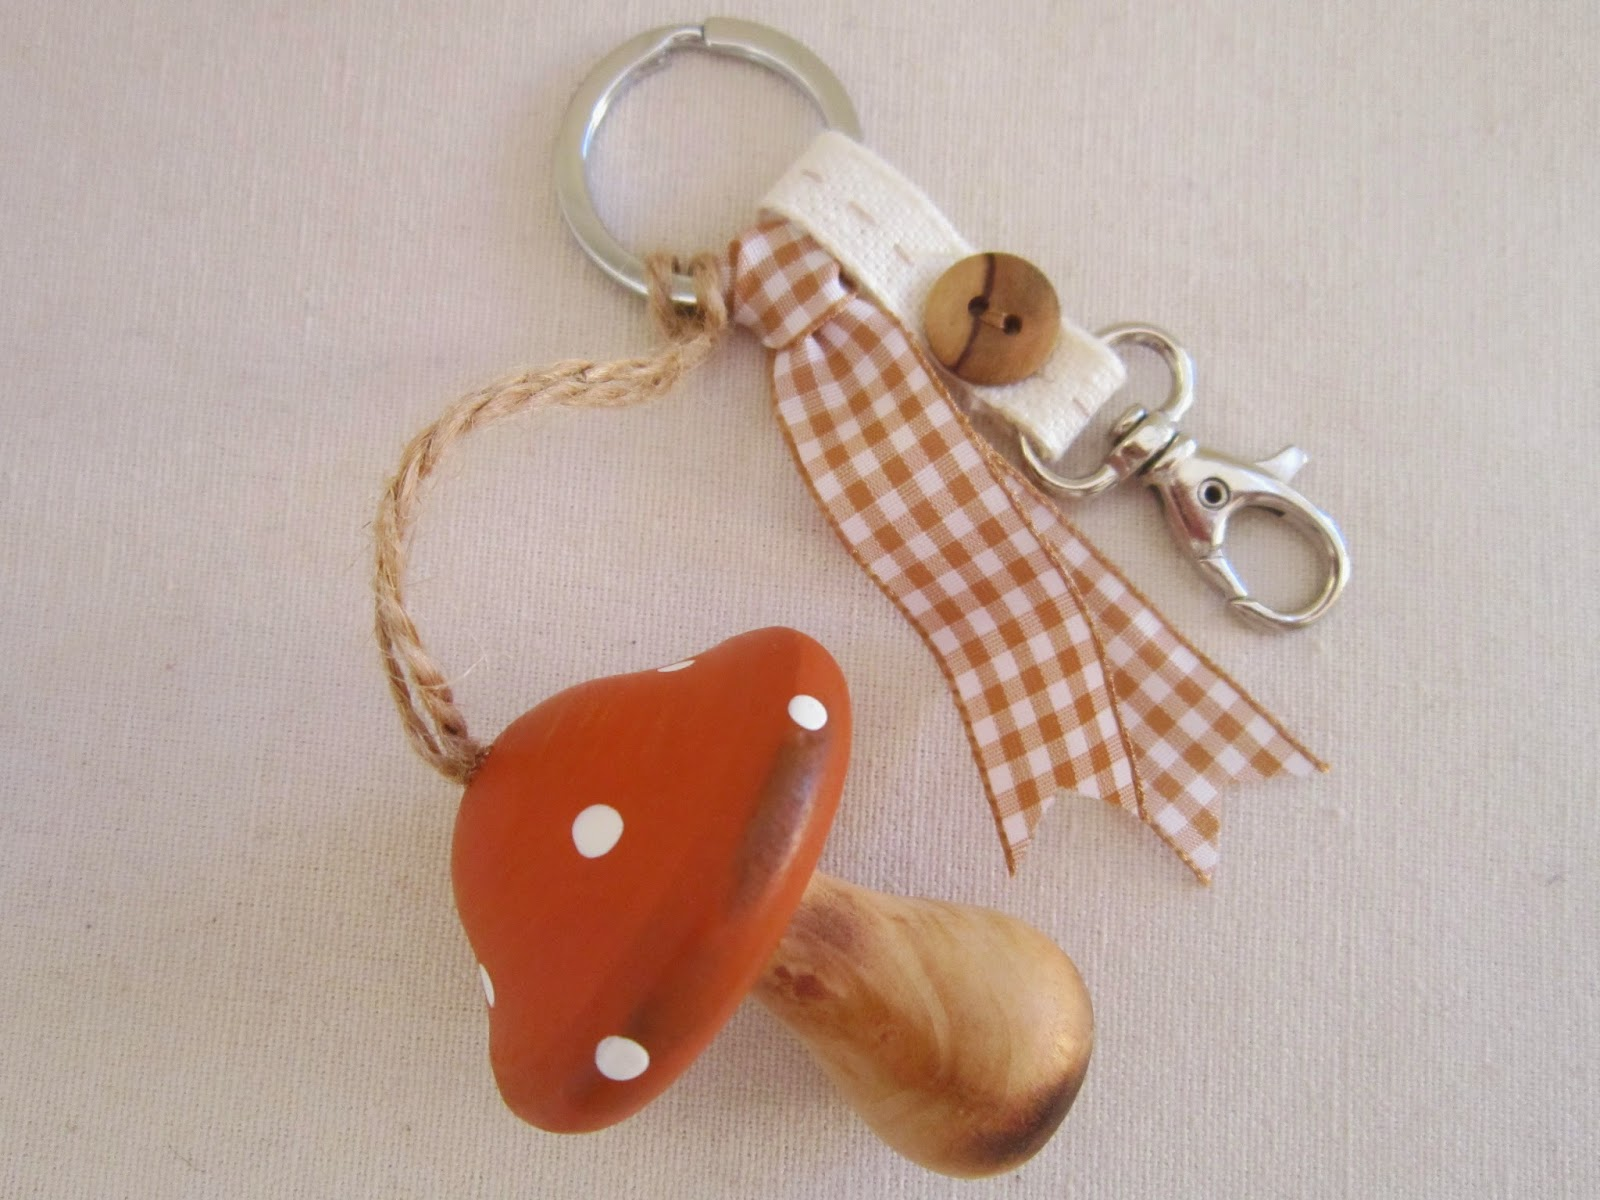 llavero, porte clefs, key holder